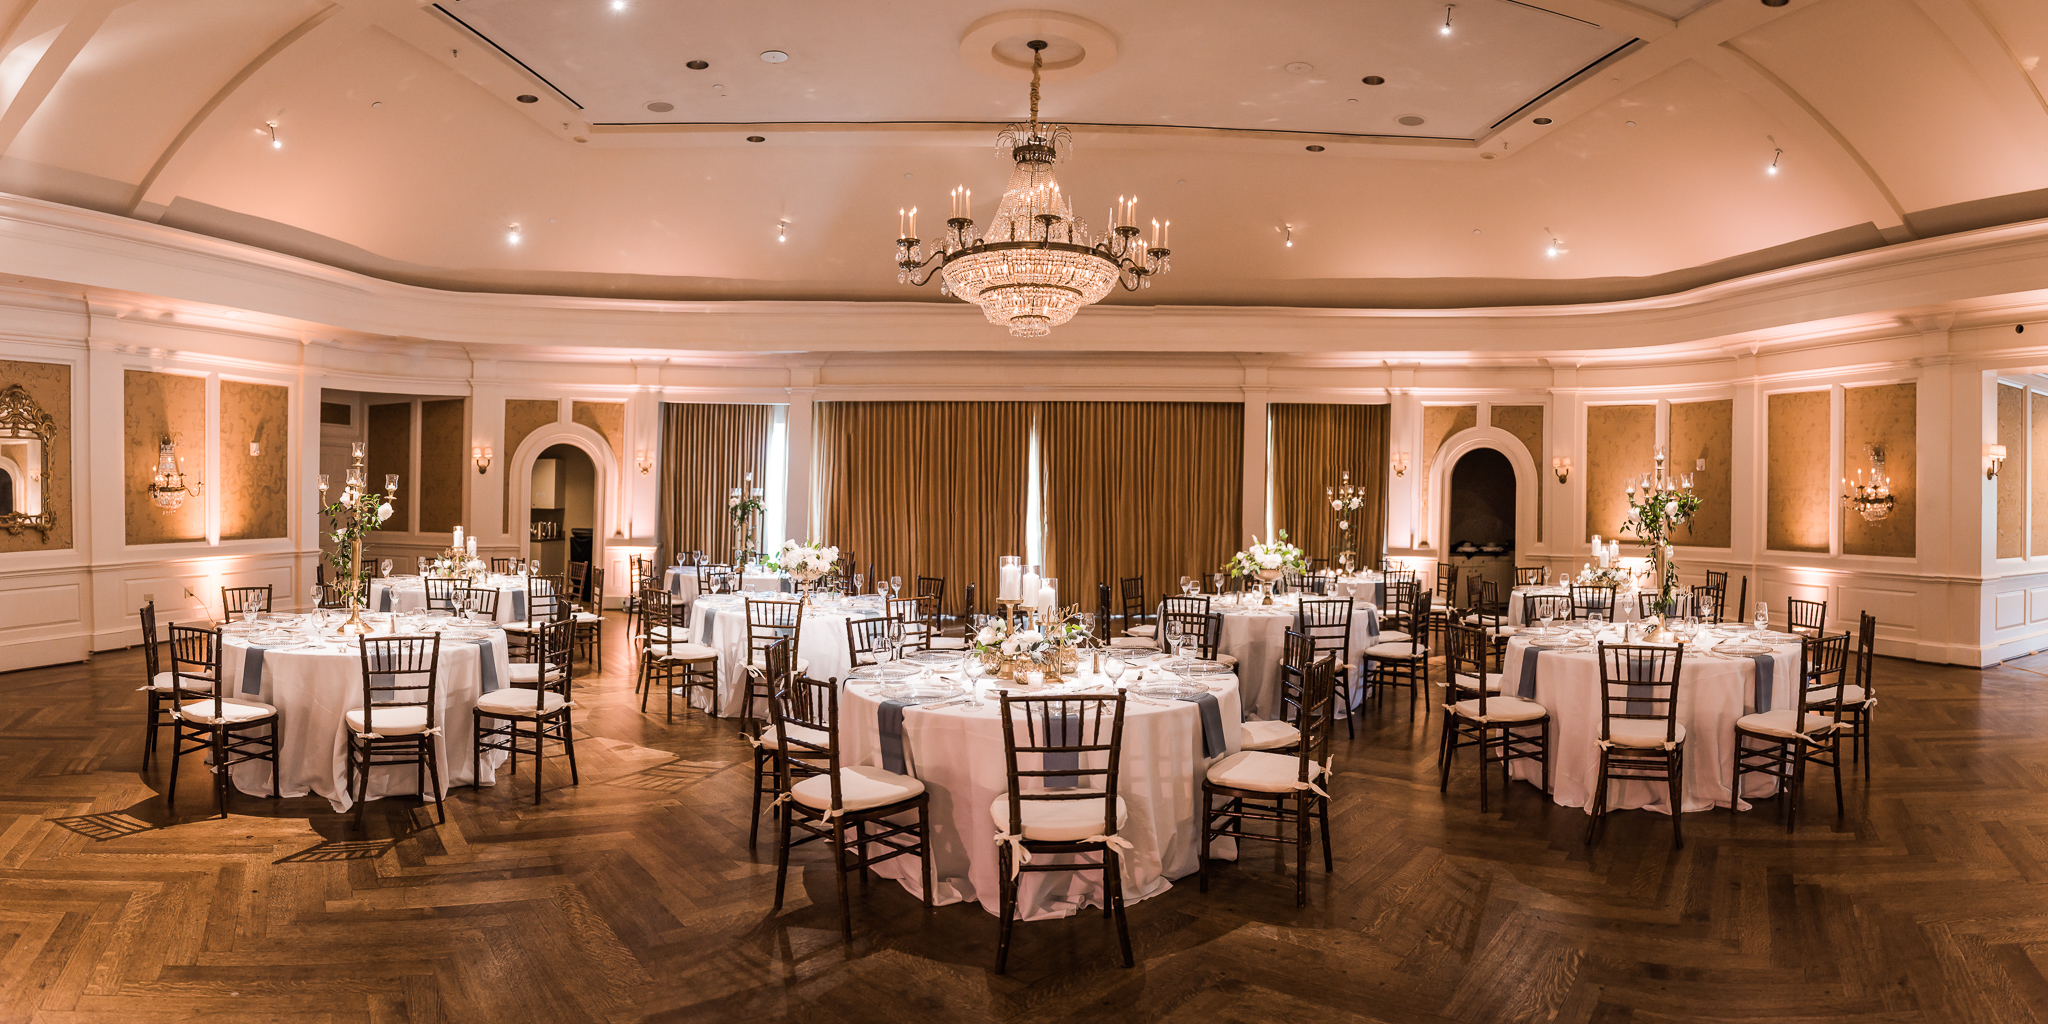 Houston, Texas Wedding Venue - River Oaks Country Club Wedding